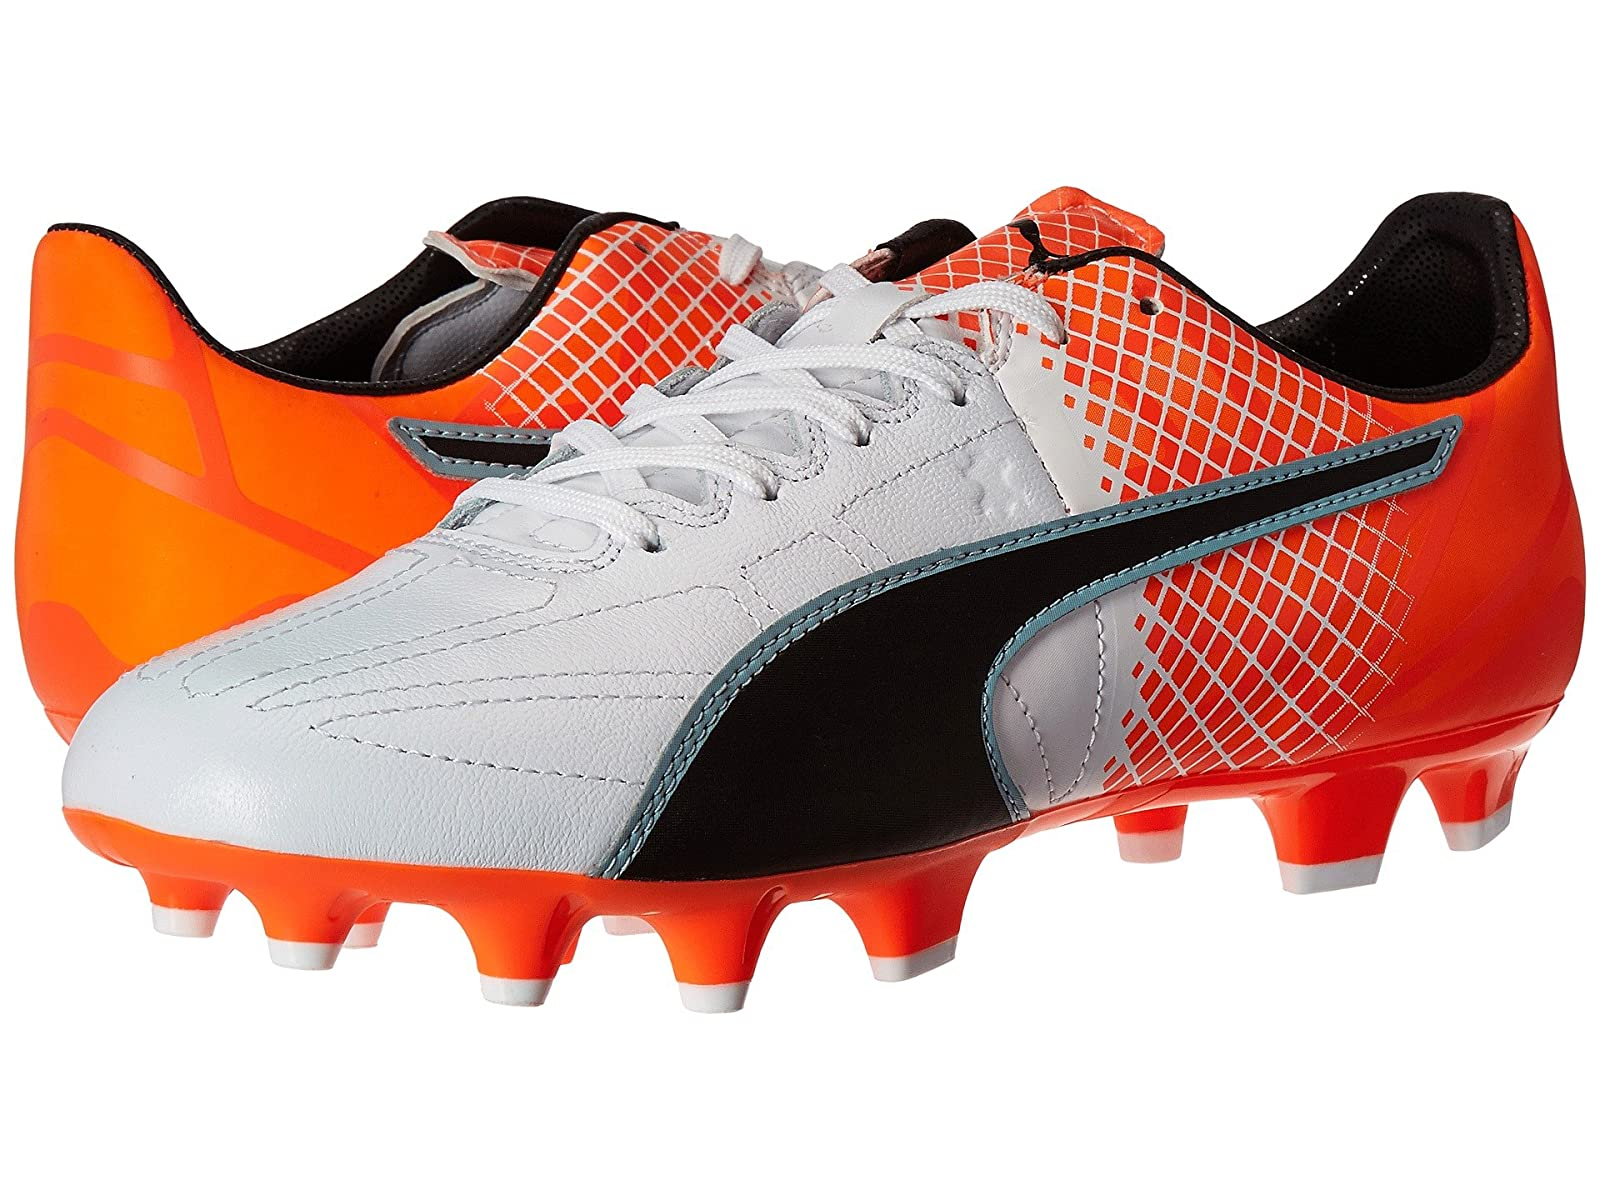 PUMA evoSPEED 3.5 LTH FGCheap and distinctive eye-catching shoes